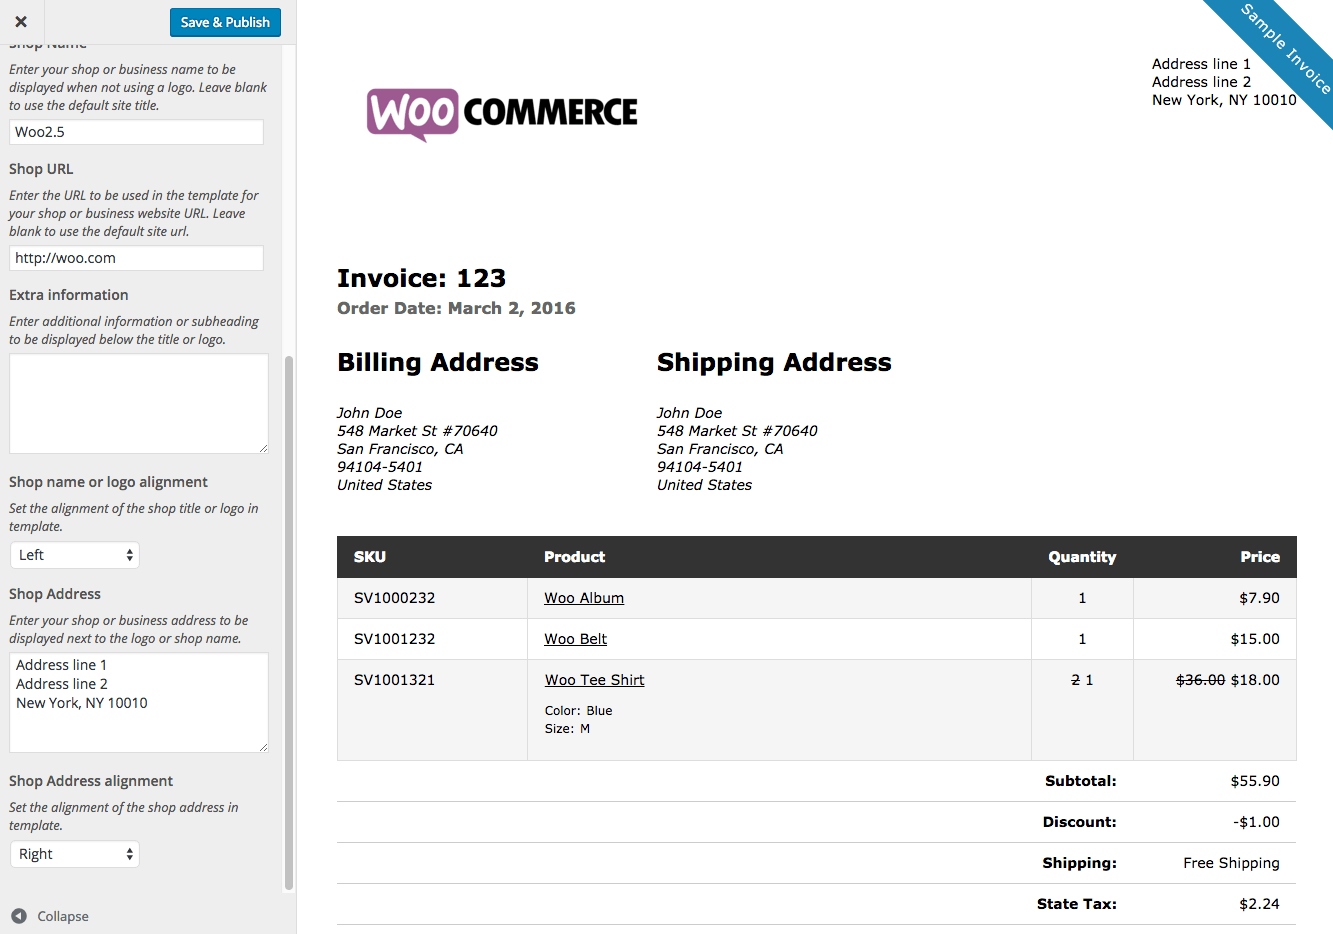 Occupyhistoryus  Pleasing Print Invoices Amp Packing Lists  Woocommerce With Outstanding Woocommerce Print Invoices  Packing Lists Customizer With Lovely Billing Statement Vs Invoice Also Graphic Design Invoice Sample In Addition Invoice Attached And Wawf Invoice Instructions As Well As Invoice Template Simple Additionally Retail Invoice Template From Woocommercecom With Occupyhistoryus  Outstanding Print Invoices Amp Packing Lists  Woocommerce With Lovely Woocommerce Print Invoices  Packing Lists Customizer And Pleasing Billing Statement Vs Invoice Also Graphic Design Invoice Sample In Addition Invoice Attached From Woocommercecom